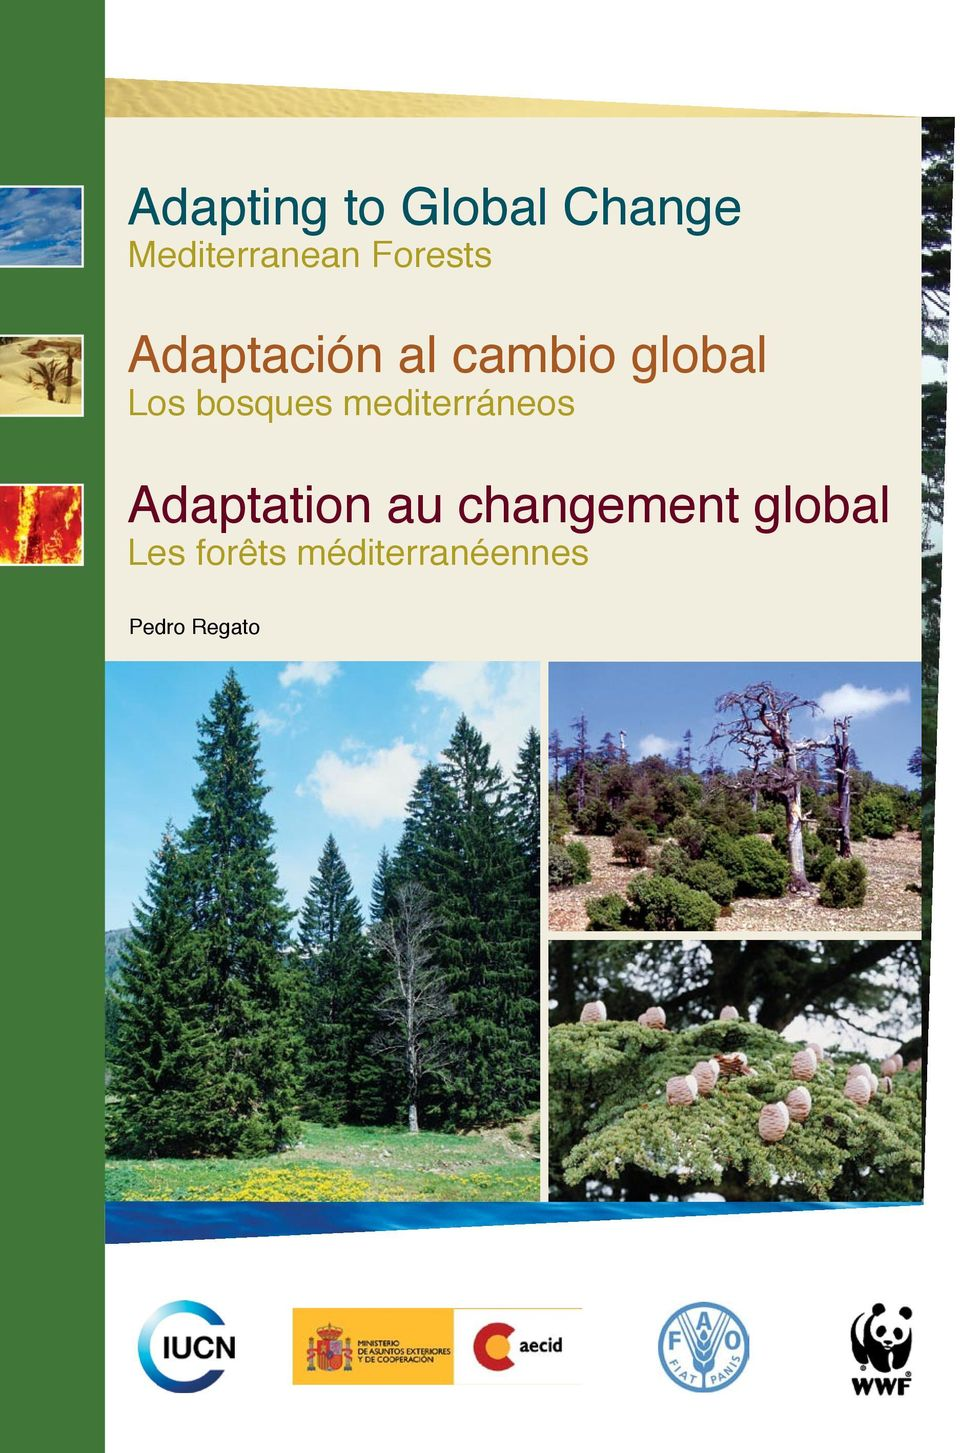 bosques mediterráneos Adaptation au